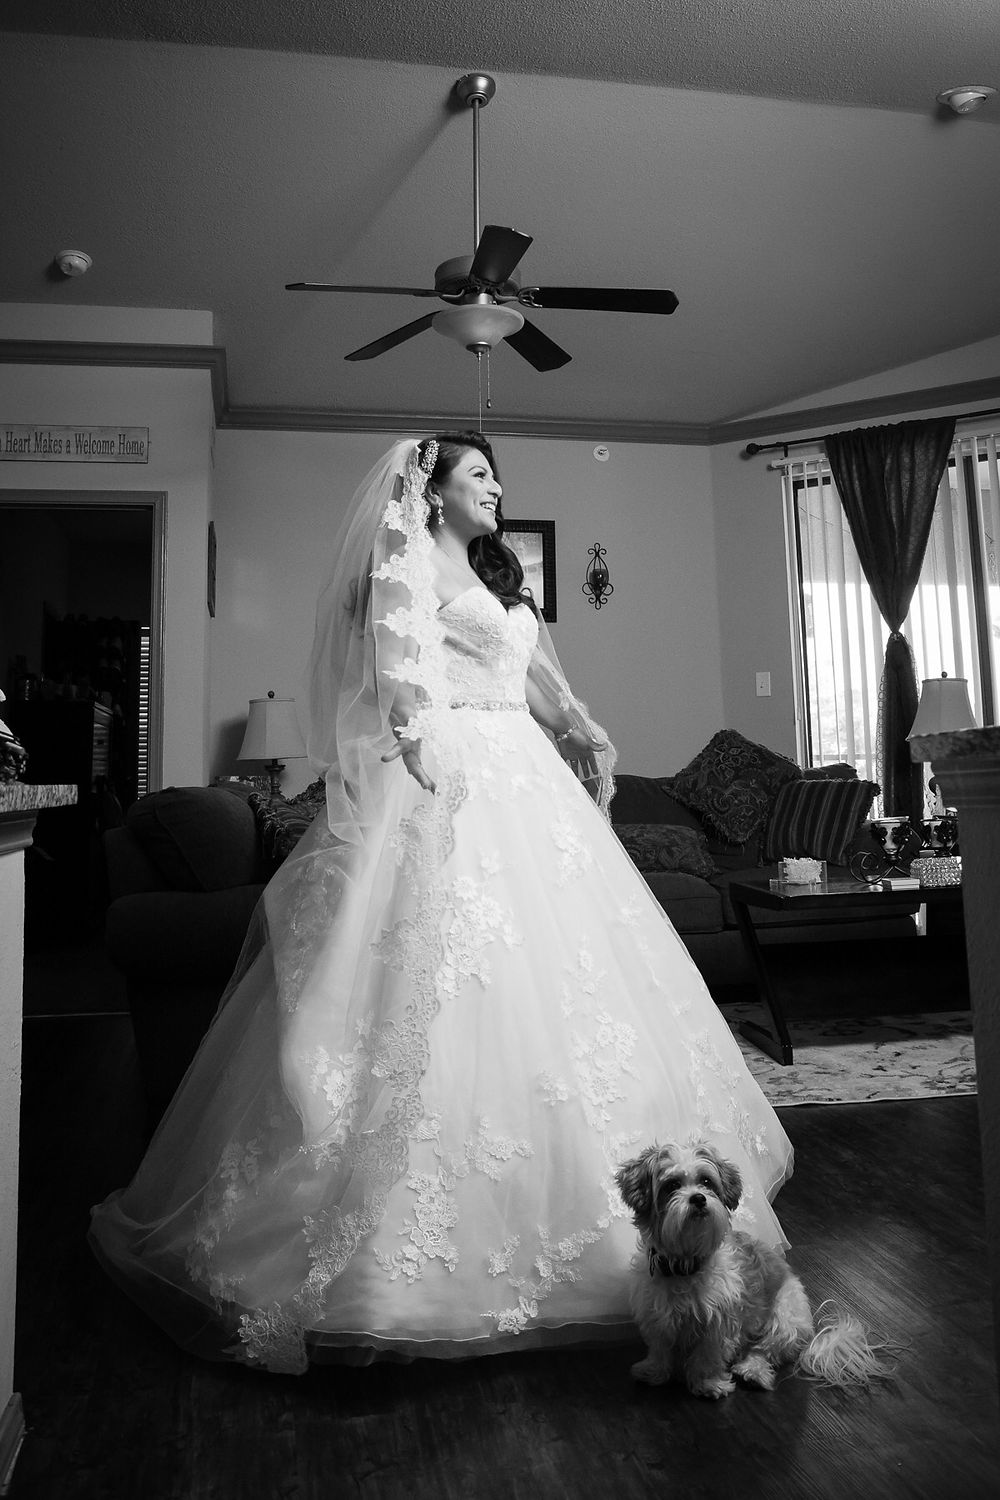 dog and wedding dress with lace veil